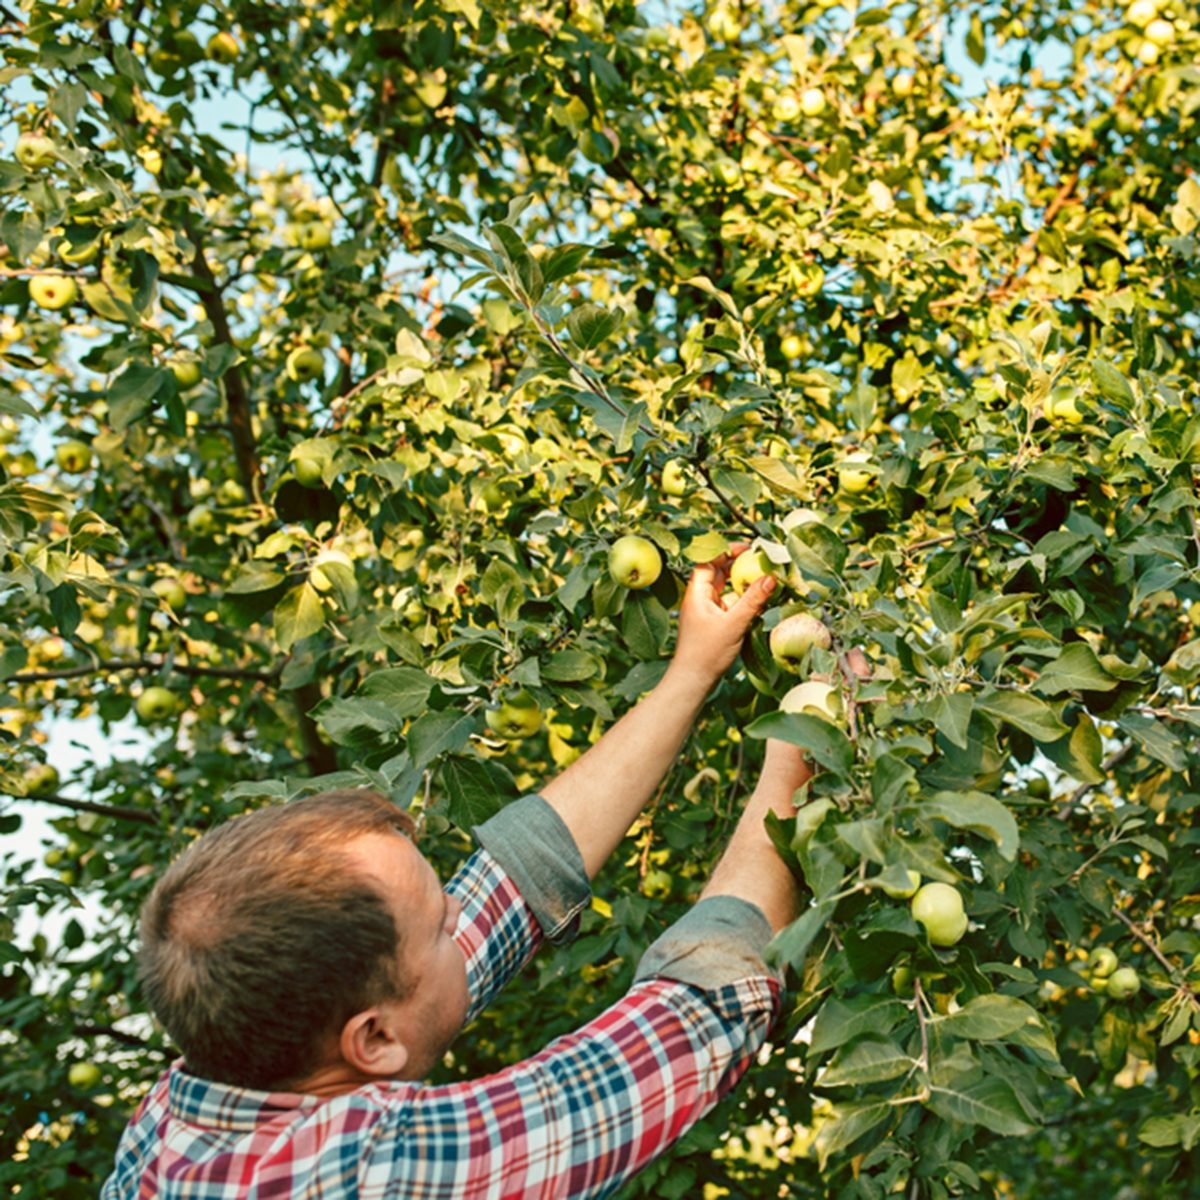 The male hand during picking apples in a garden outdoors.